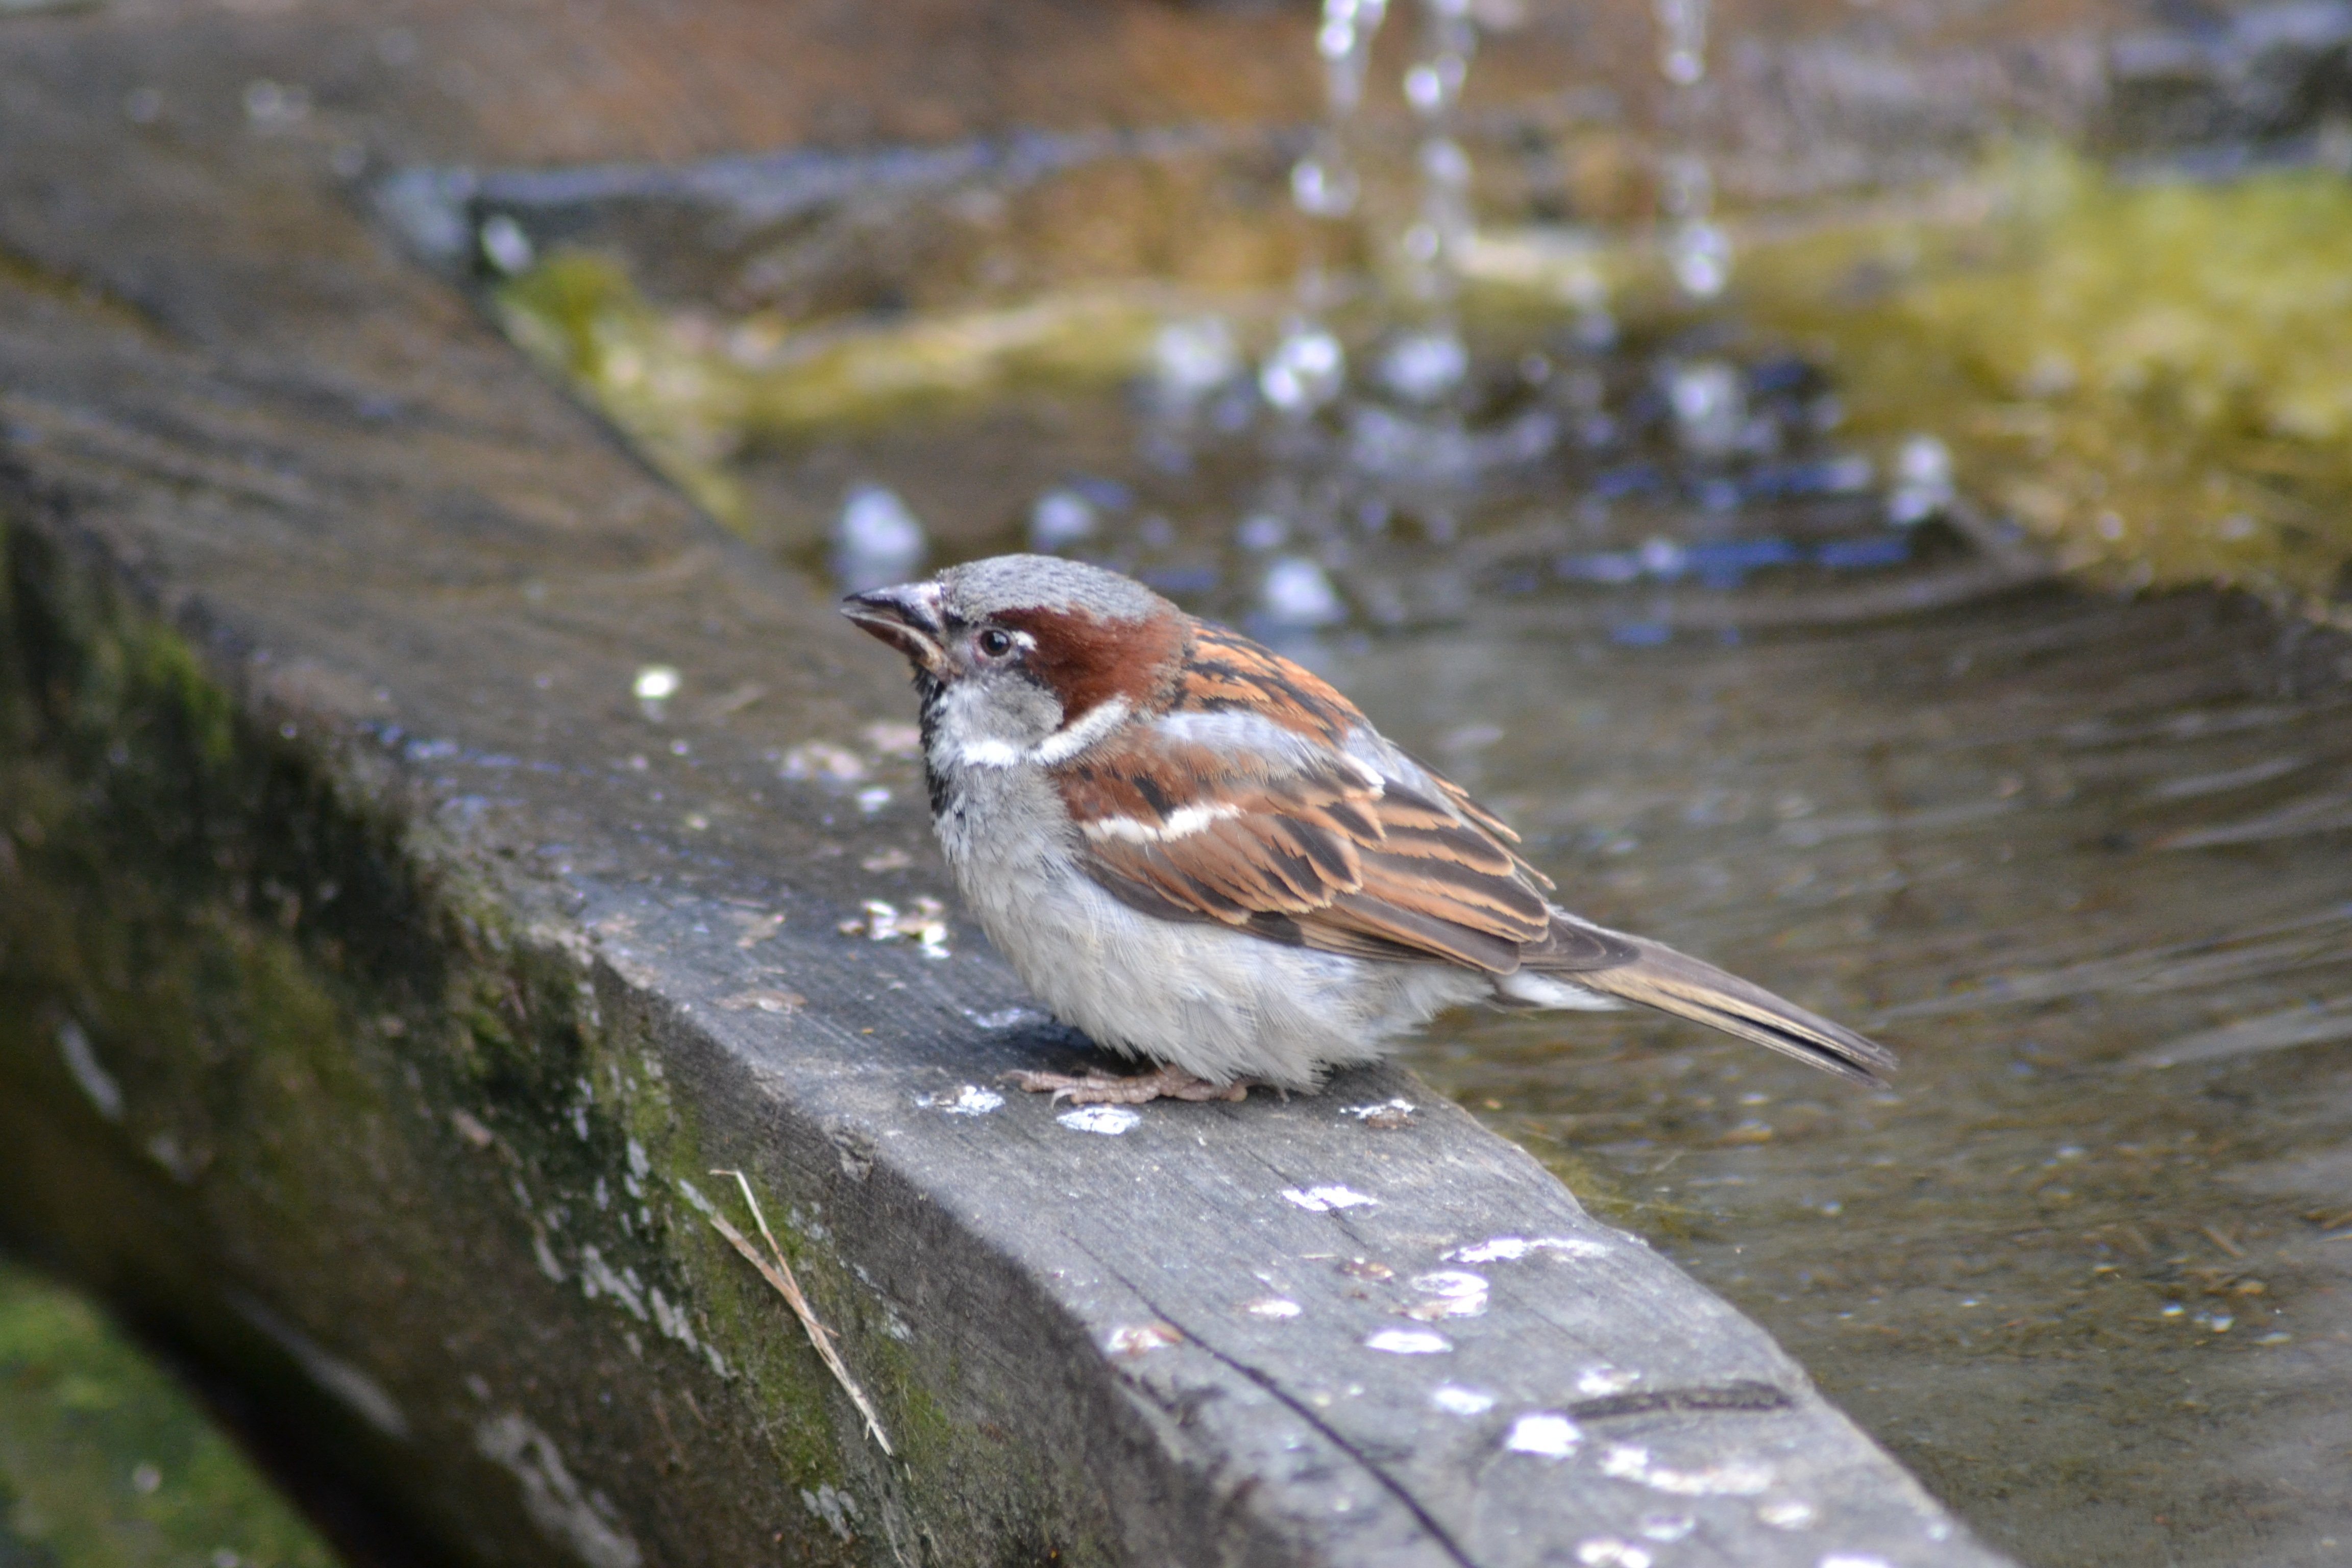 Cute Beautiful Sparrow Free Image